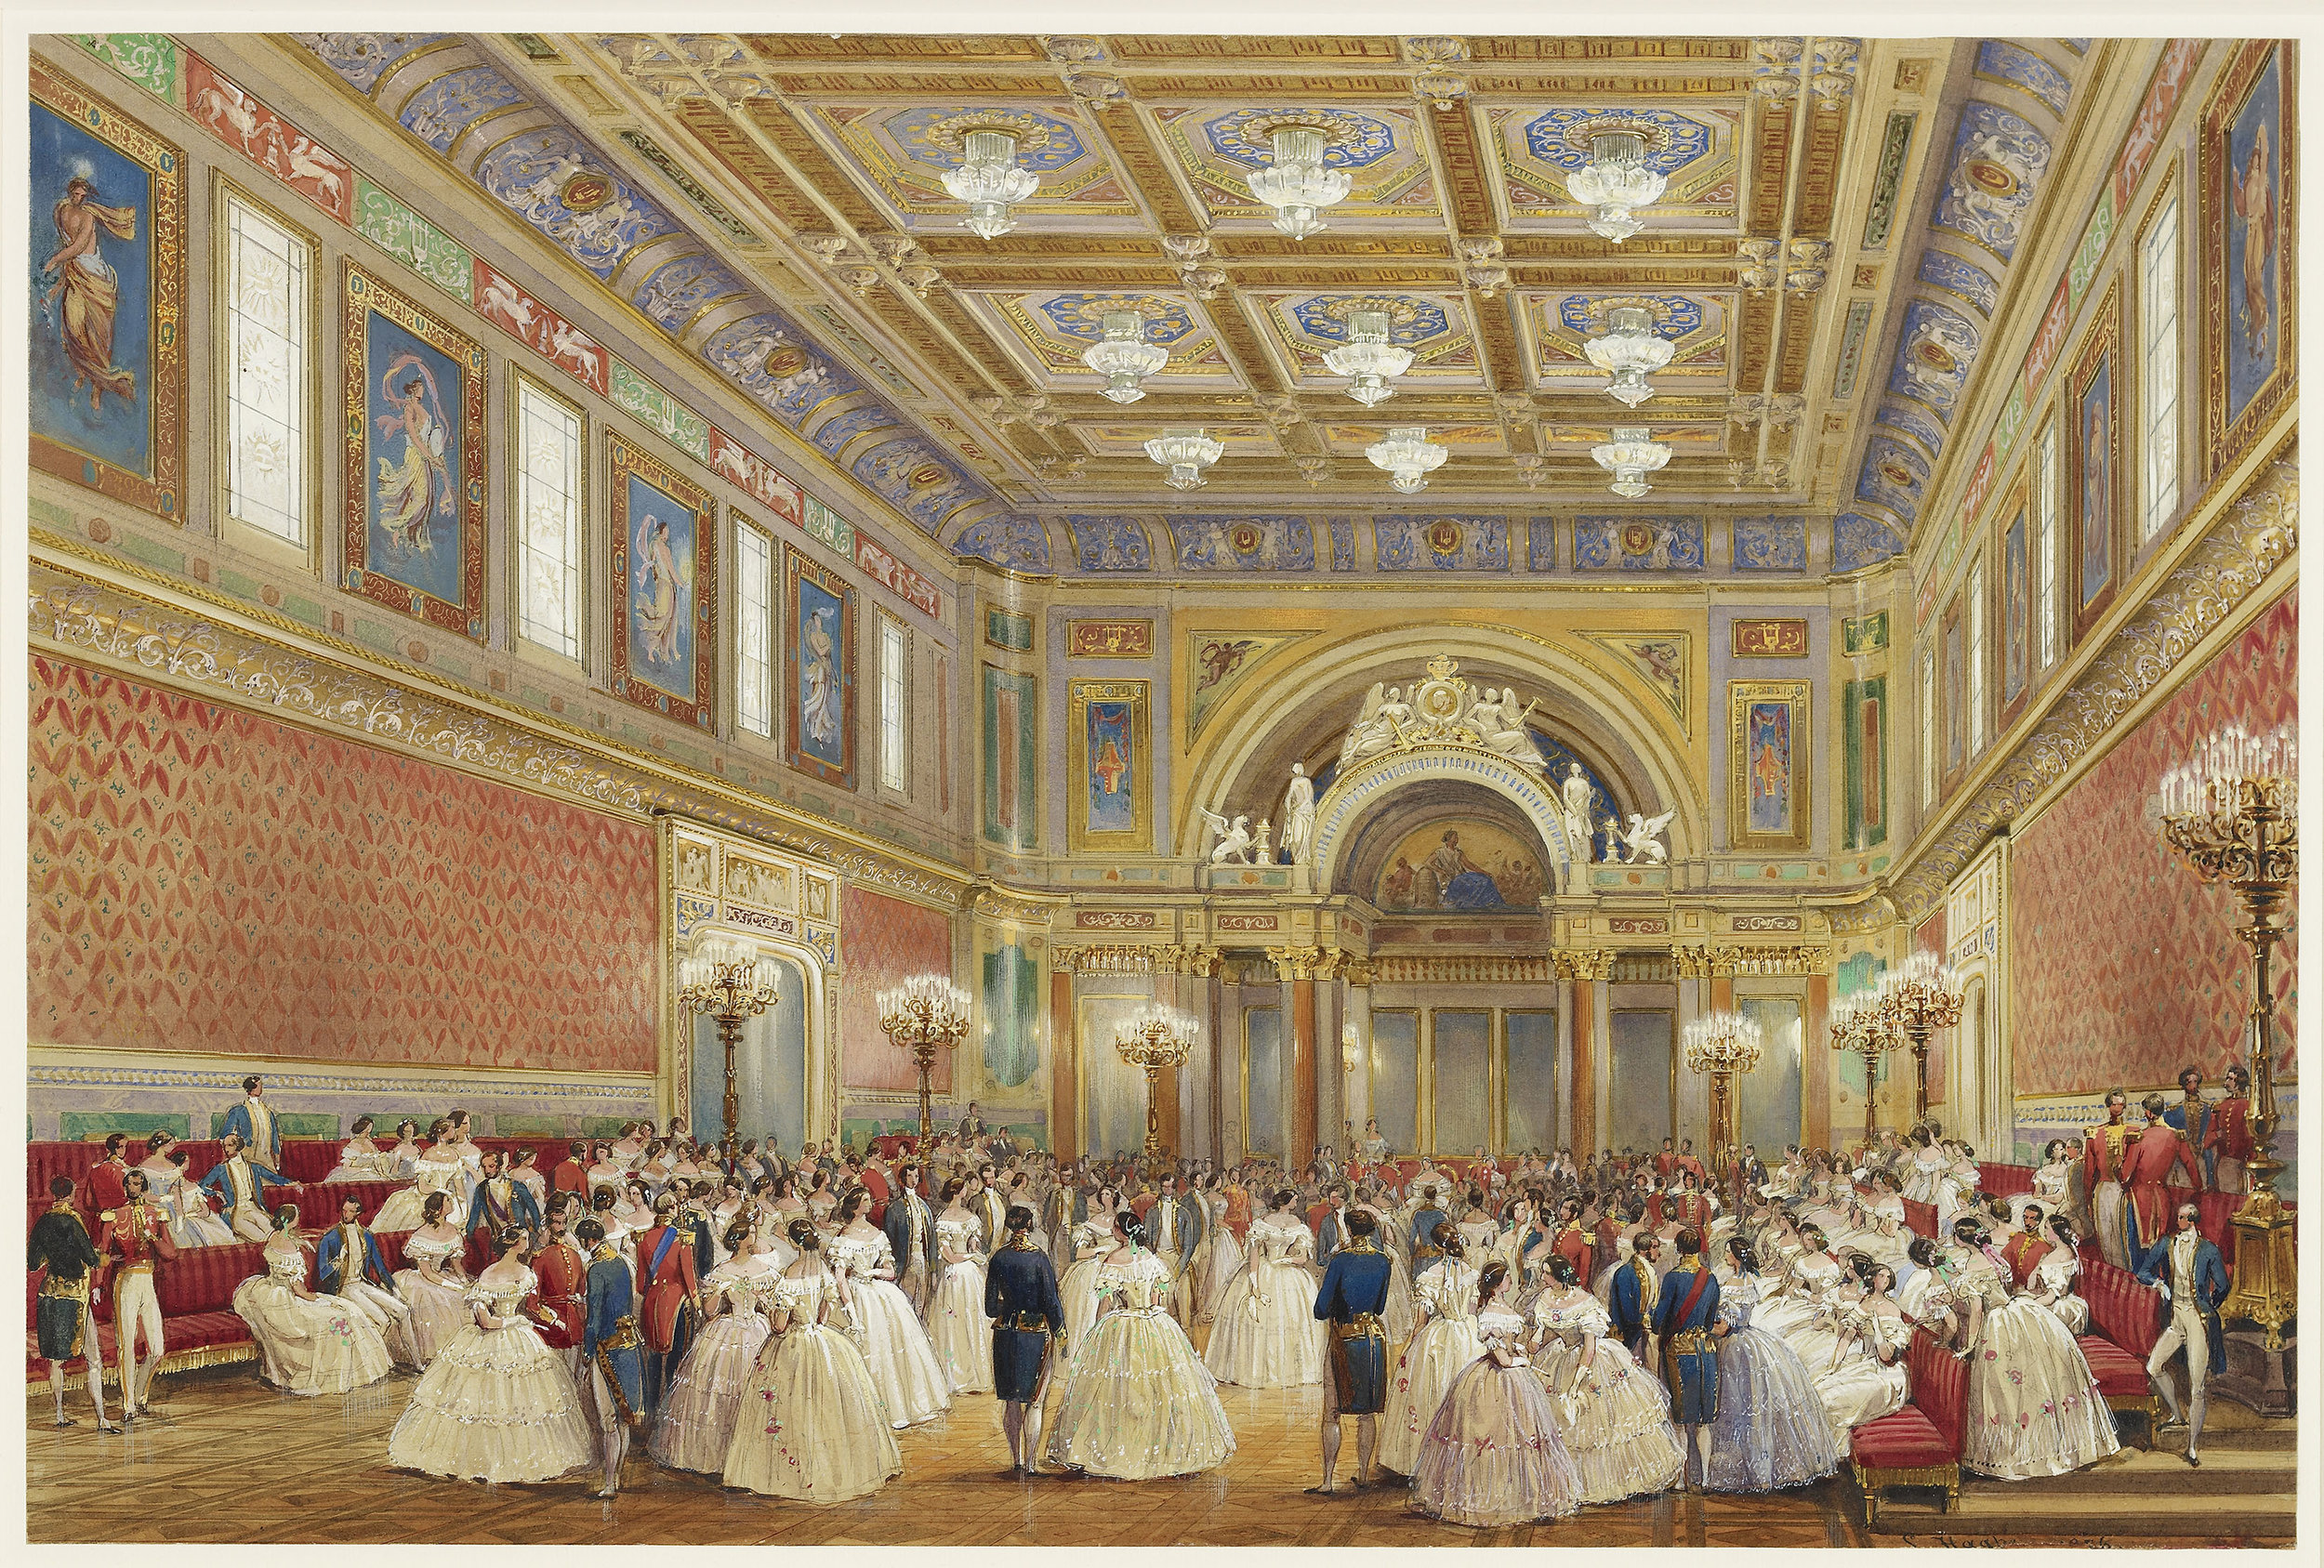 The Ballroom, Buckingham Palace by Louis Haghe.For use only in connection with reporting on 'Queen Victoria's Palace', the special exhibition at this year's Summer Opening of Buckingham Palace 20 July - 29 September 2019. Not to be archived or sold on. Image credit Royal Collection Trust/ © Her Majesty Queen Elizabeth II 2019